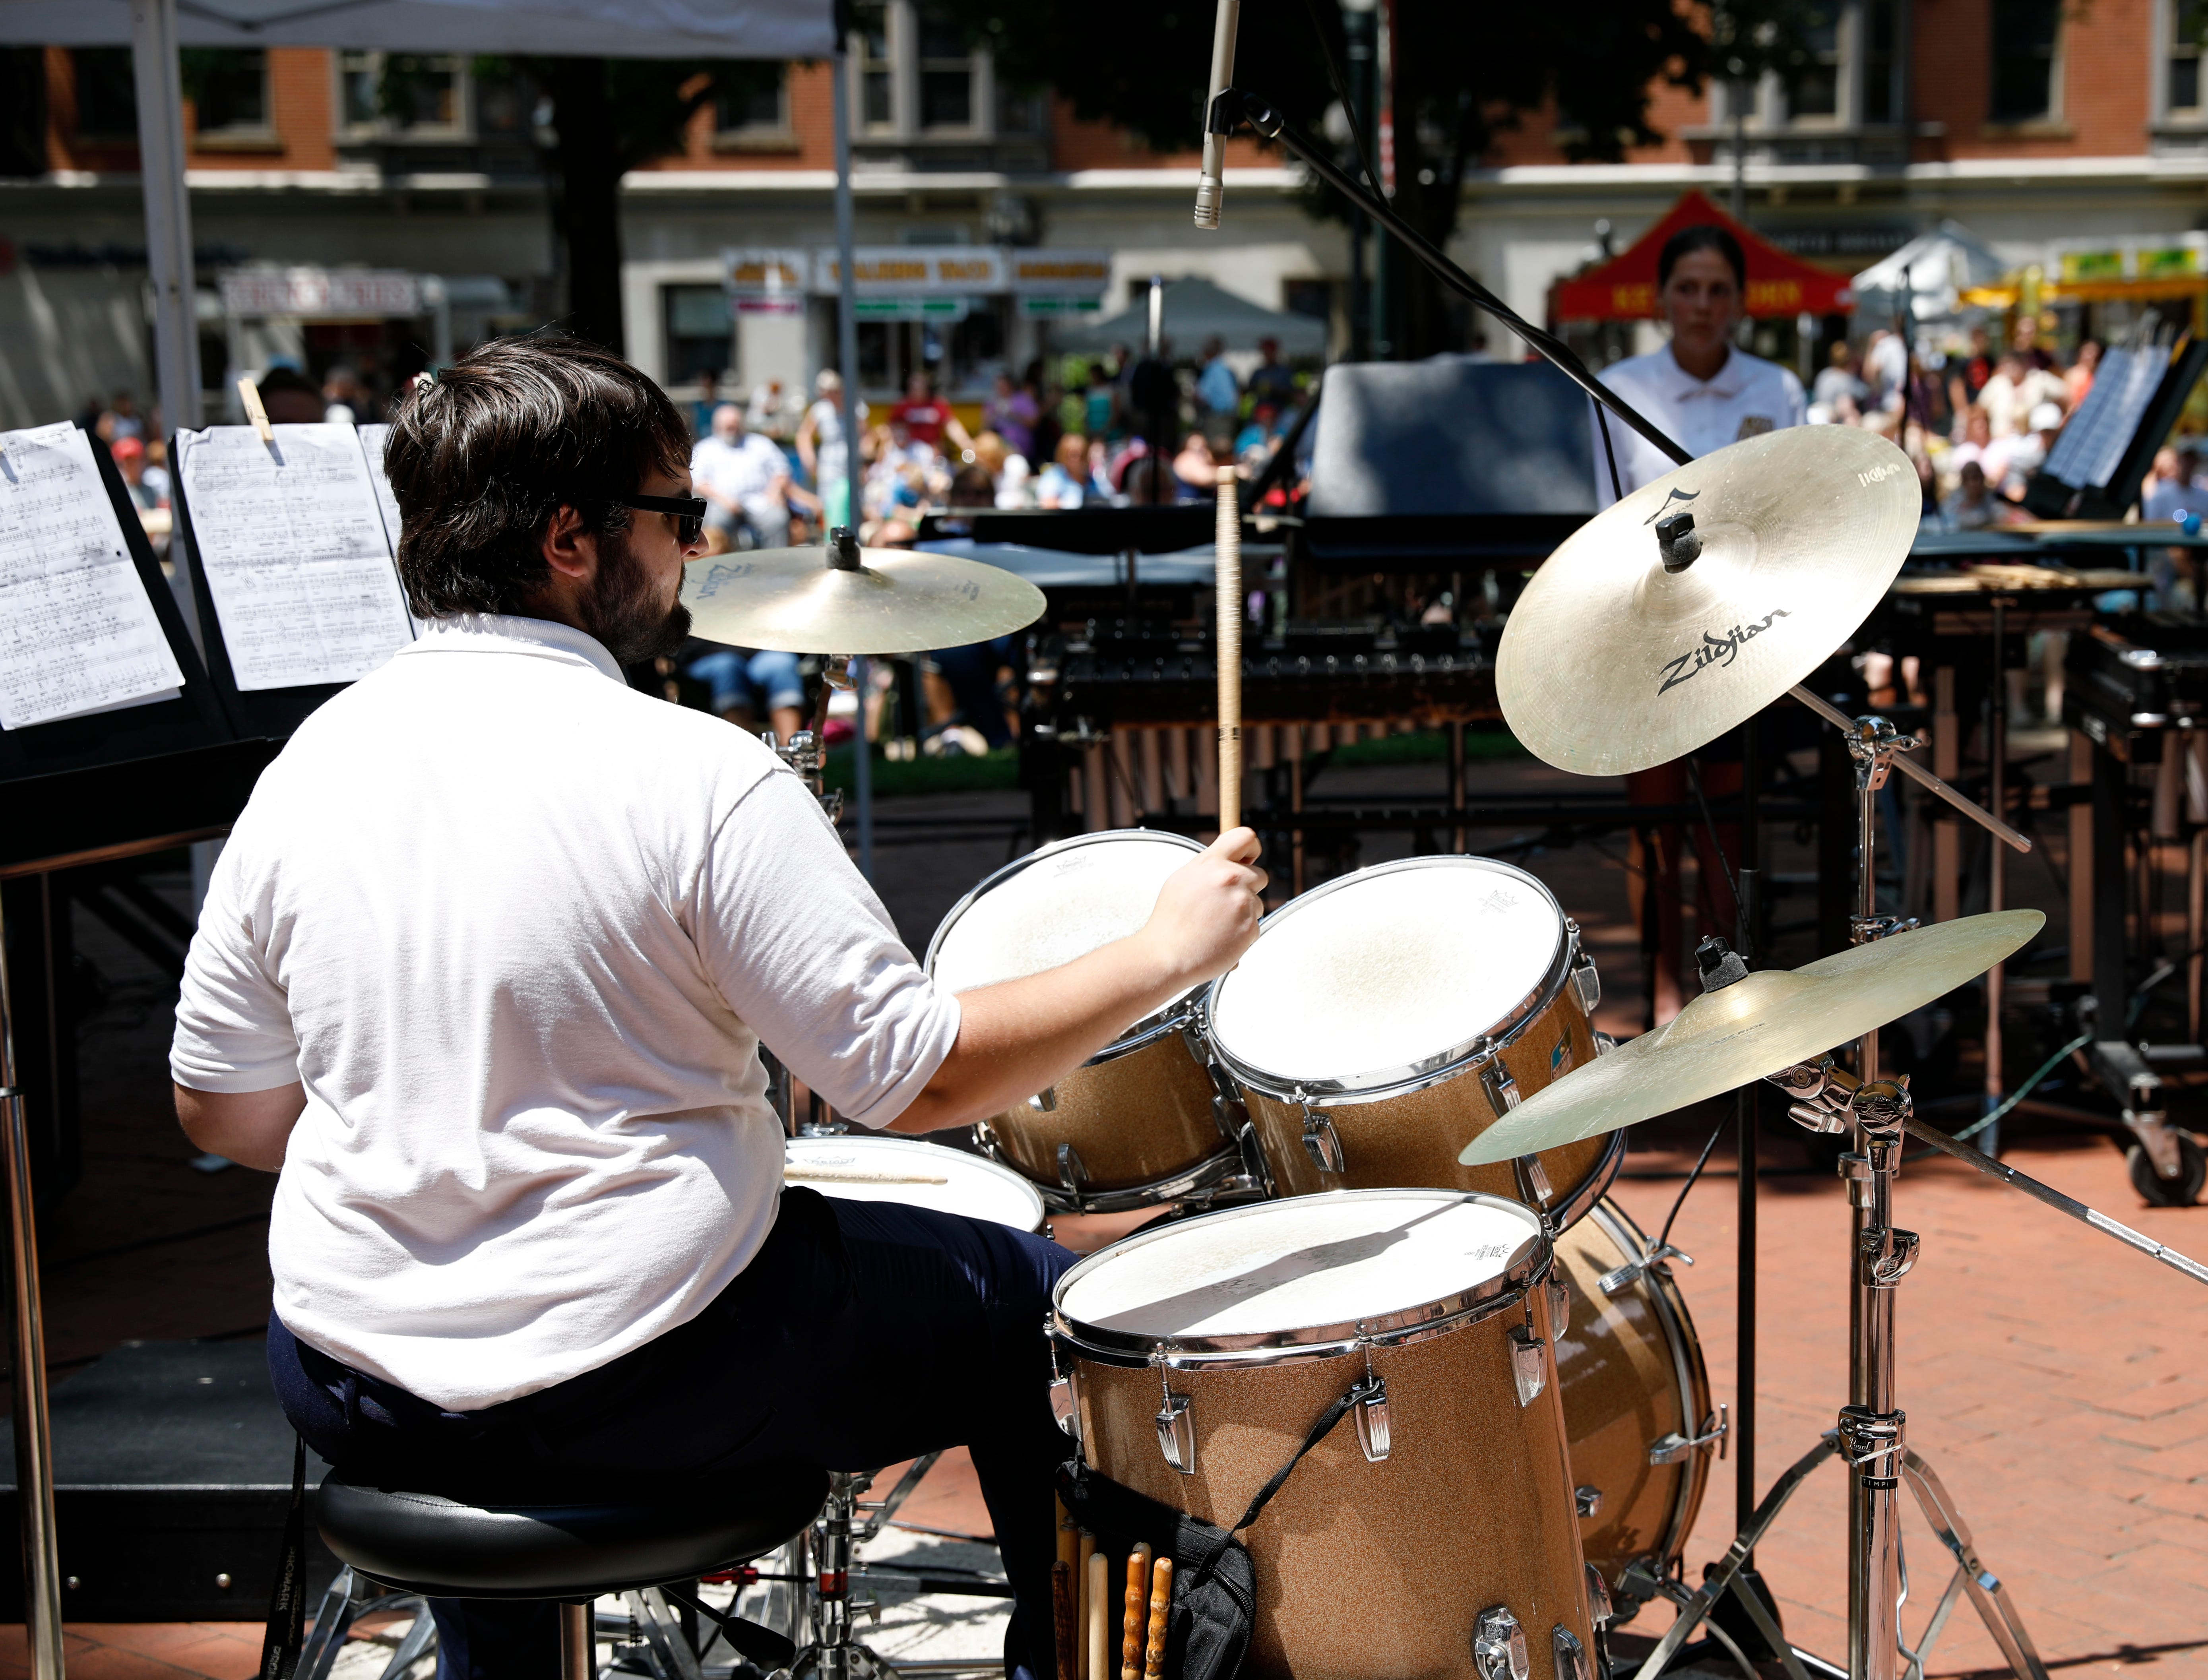 Zach Dwyer performs with the Lancaster High School Percussion Ensemble Wednesday, July 25, 2018, during a midday Lancaster Festival concert in downtown Lancaster.